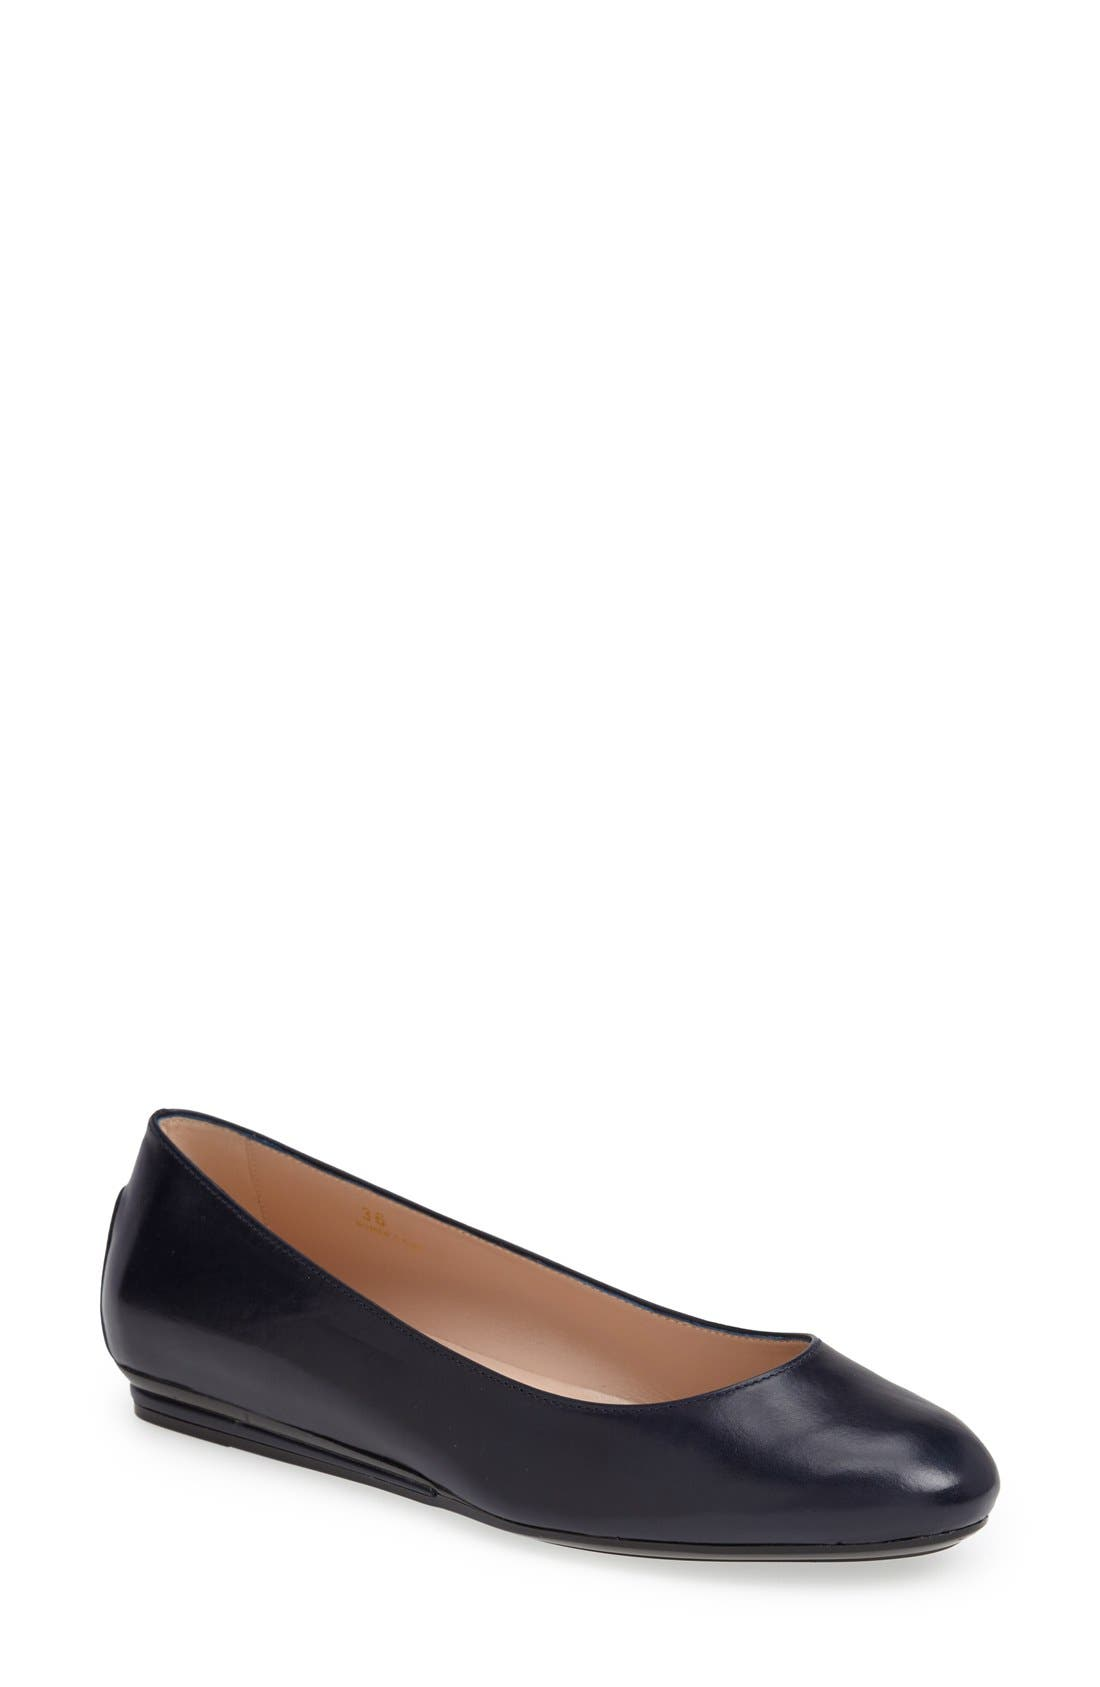 Alternate Image 1 Selected - Tod's Demi Wedge Ballet Flat